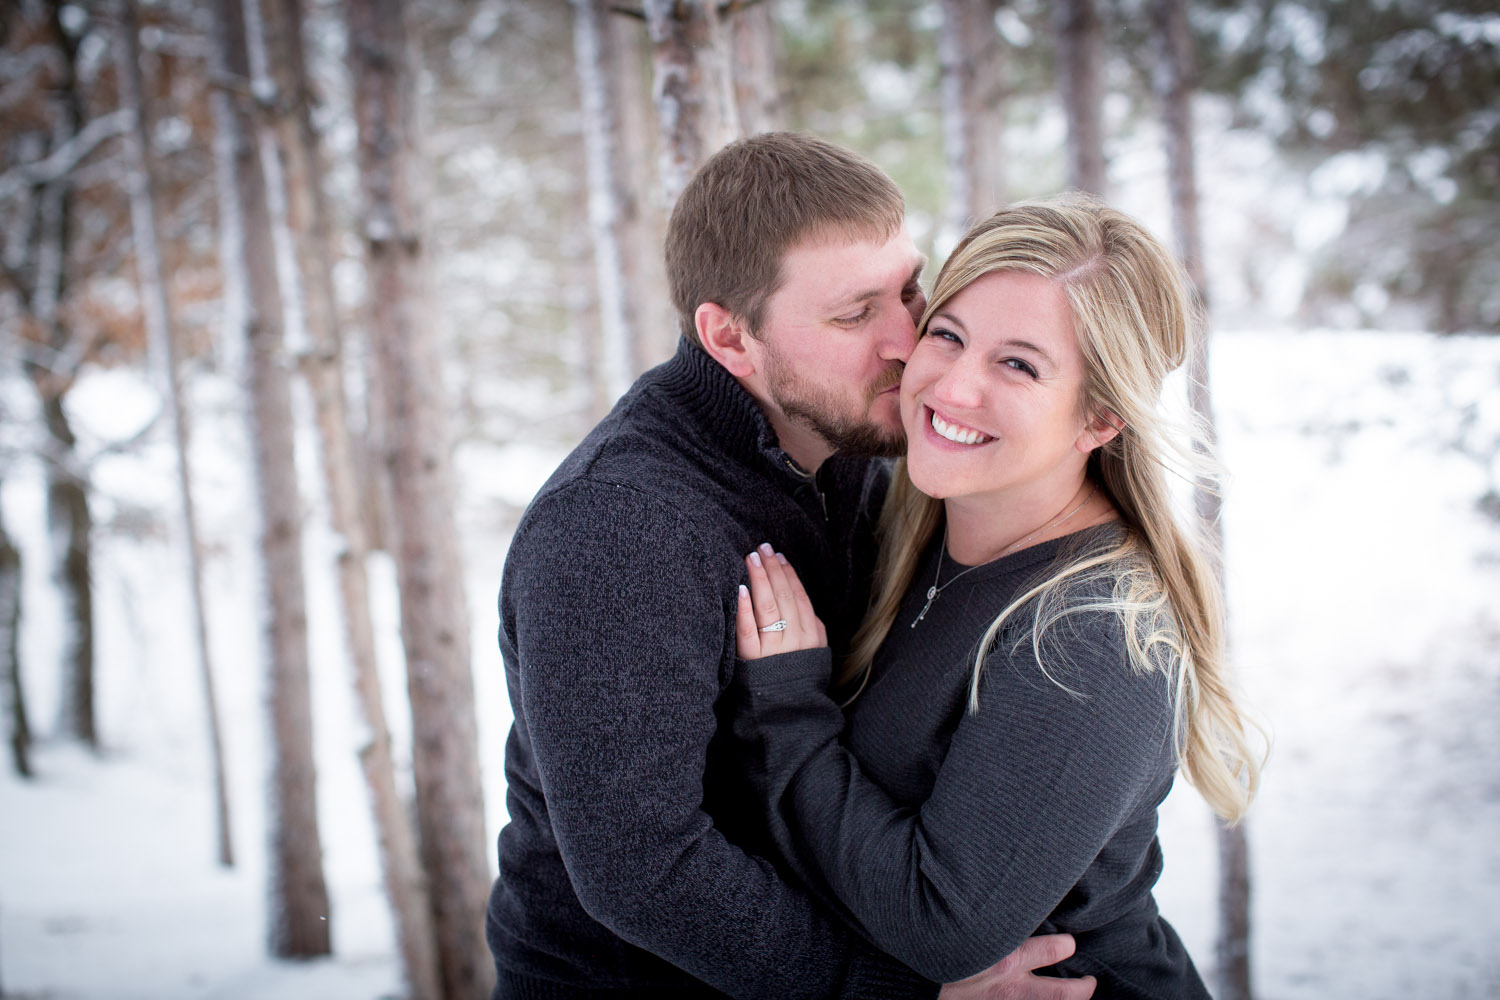 02-bunker-hill-regional-park-winter-wonderland-minnesota-engagement-photographer-tall-pines-snowy-day-fun-photo-session-mahonen-photography.jpg